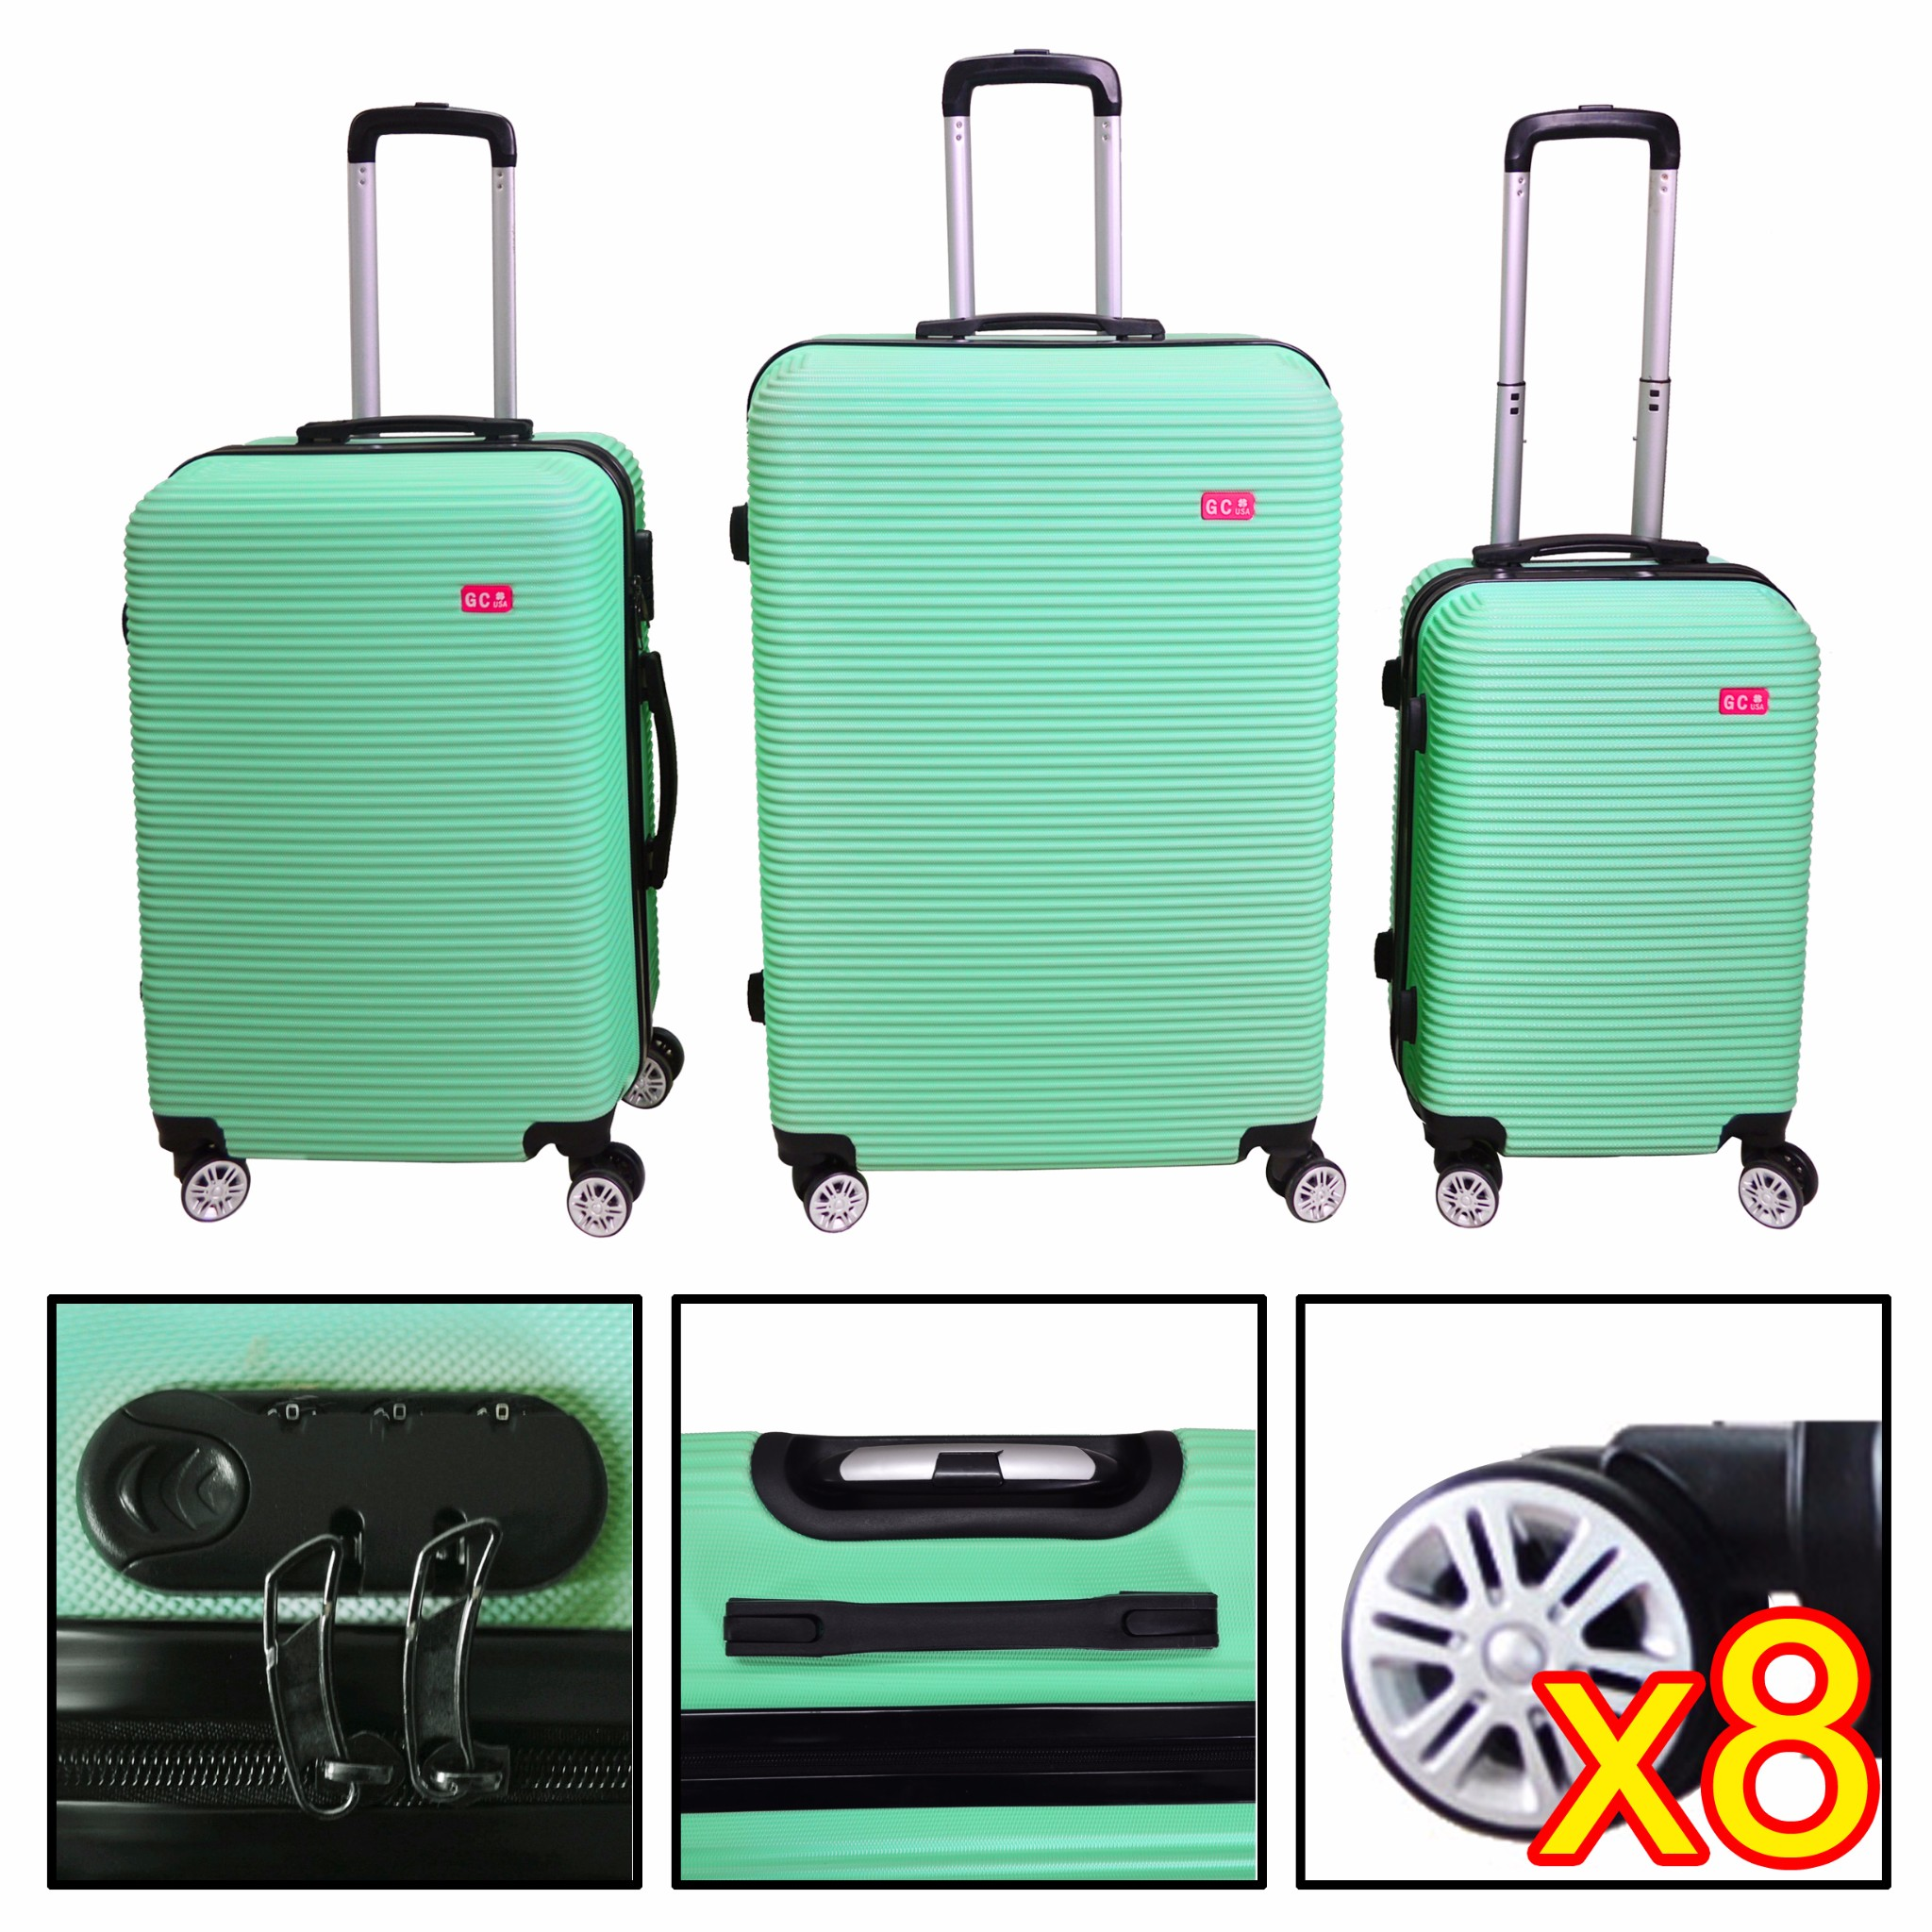 3 Pcs ABS Luggage Hard Suitcase Spinner Set Travel Bag Trolley Wheels Coded Lock by